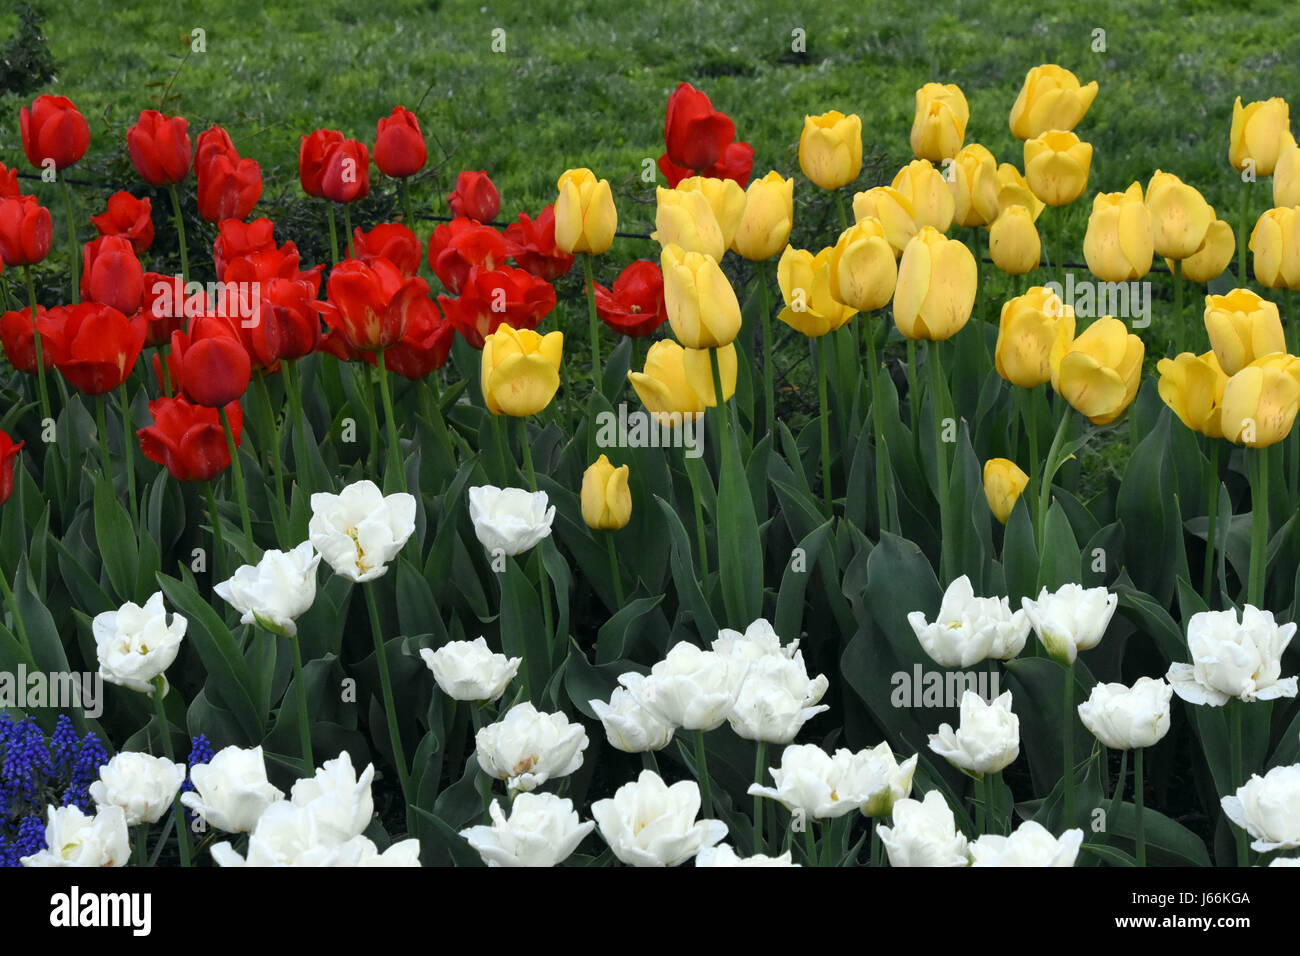 tulips at the botanic garden in early spring Stock Photo